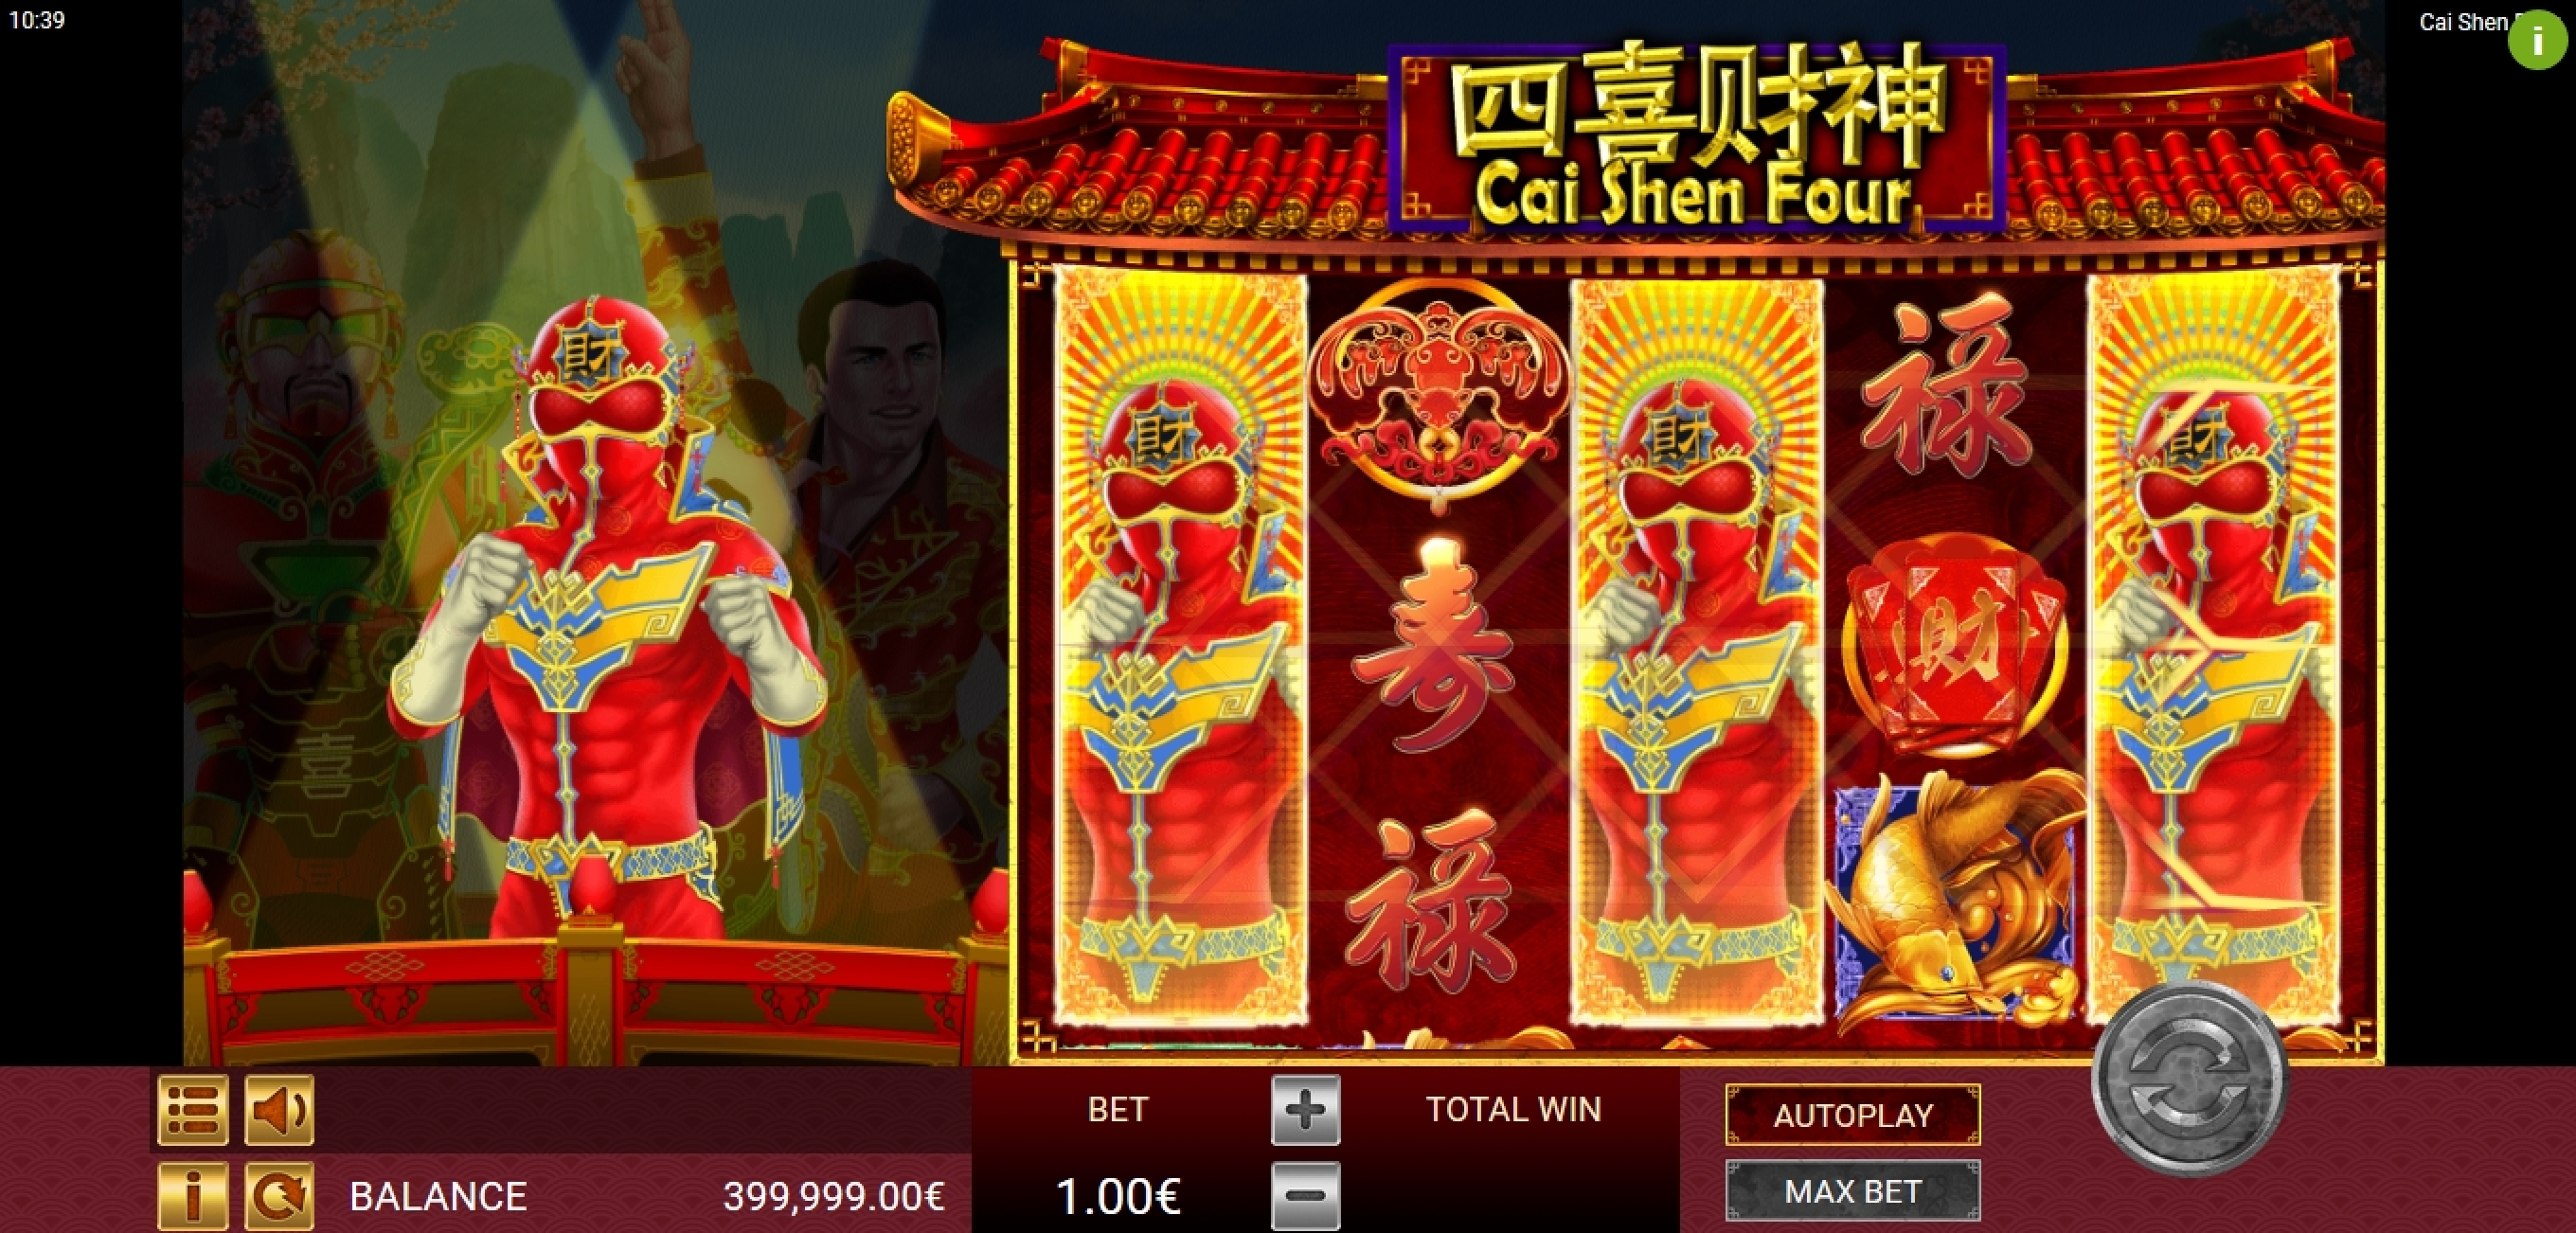 Win Money in Cai Shen Four Free Slot Game by Gamatron